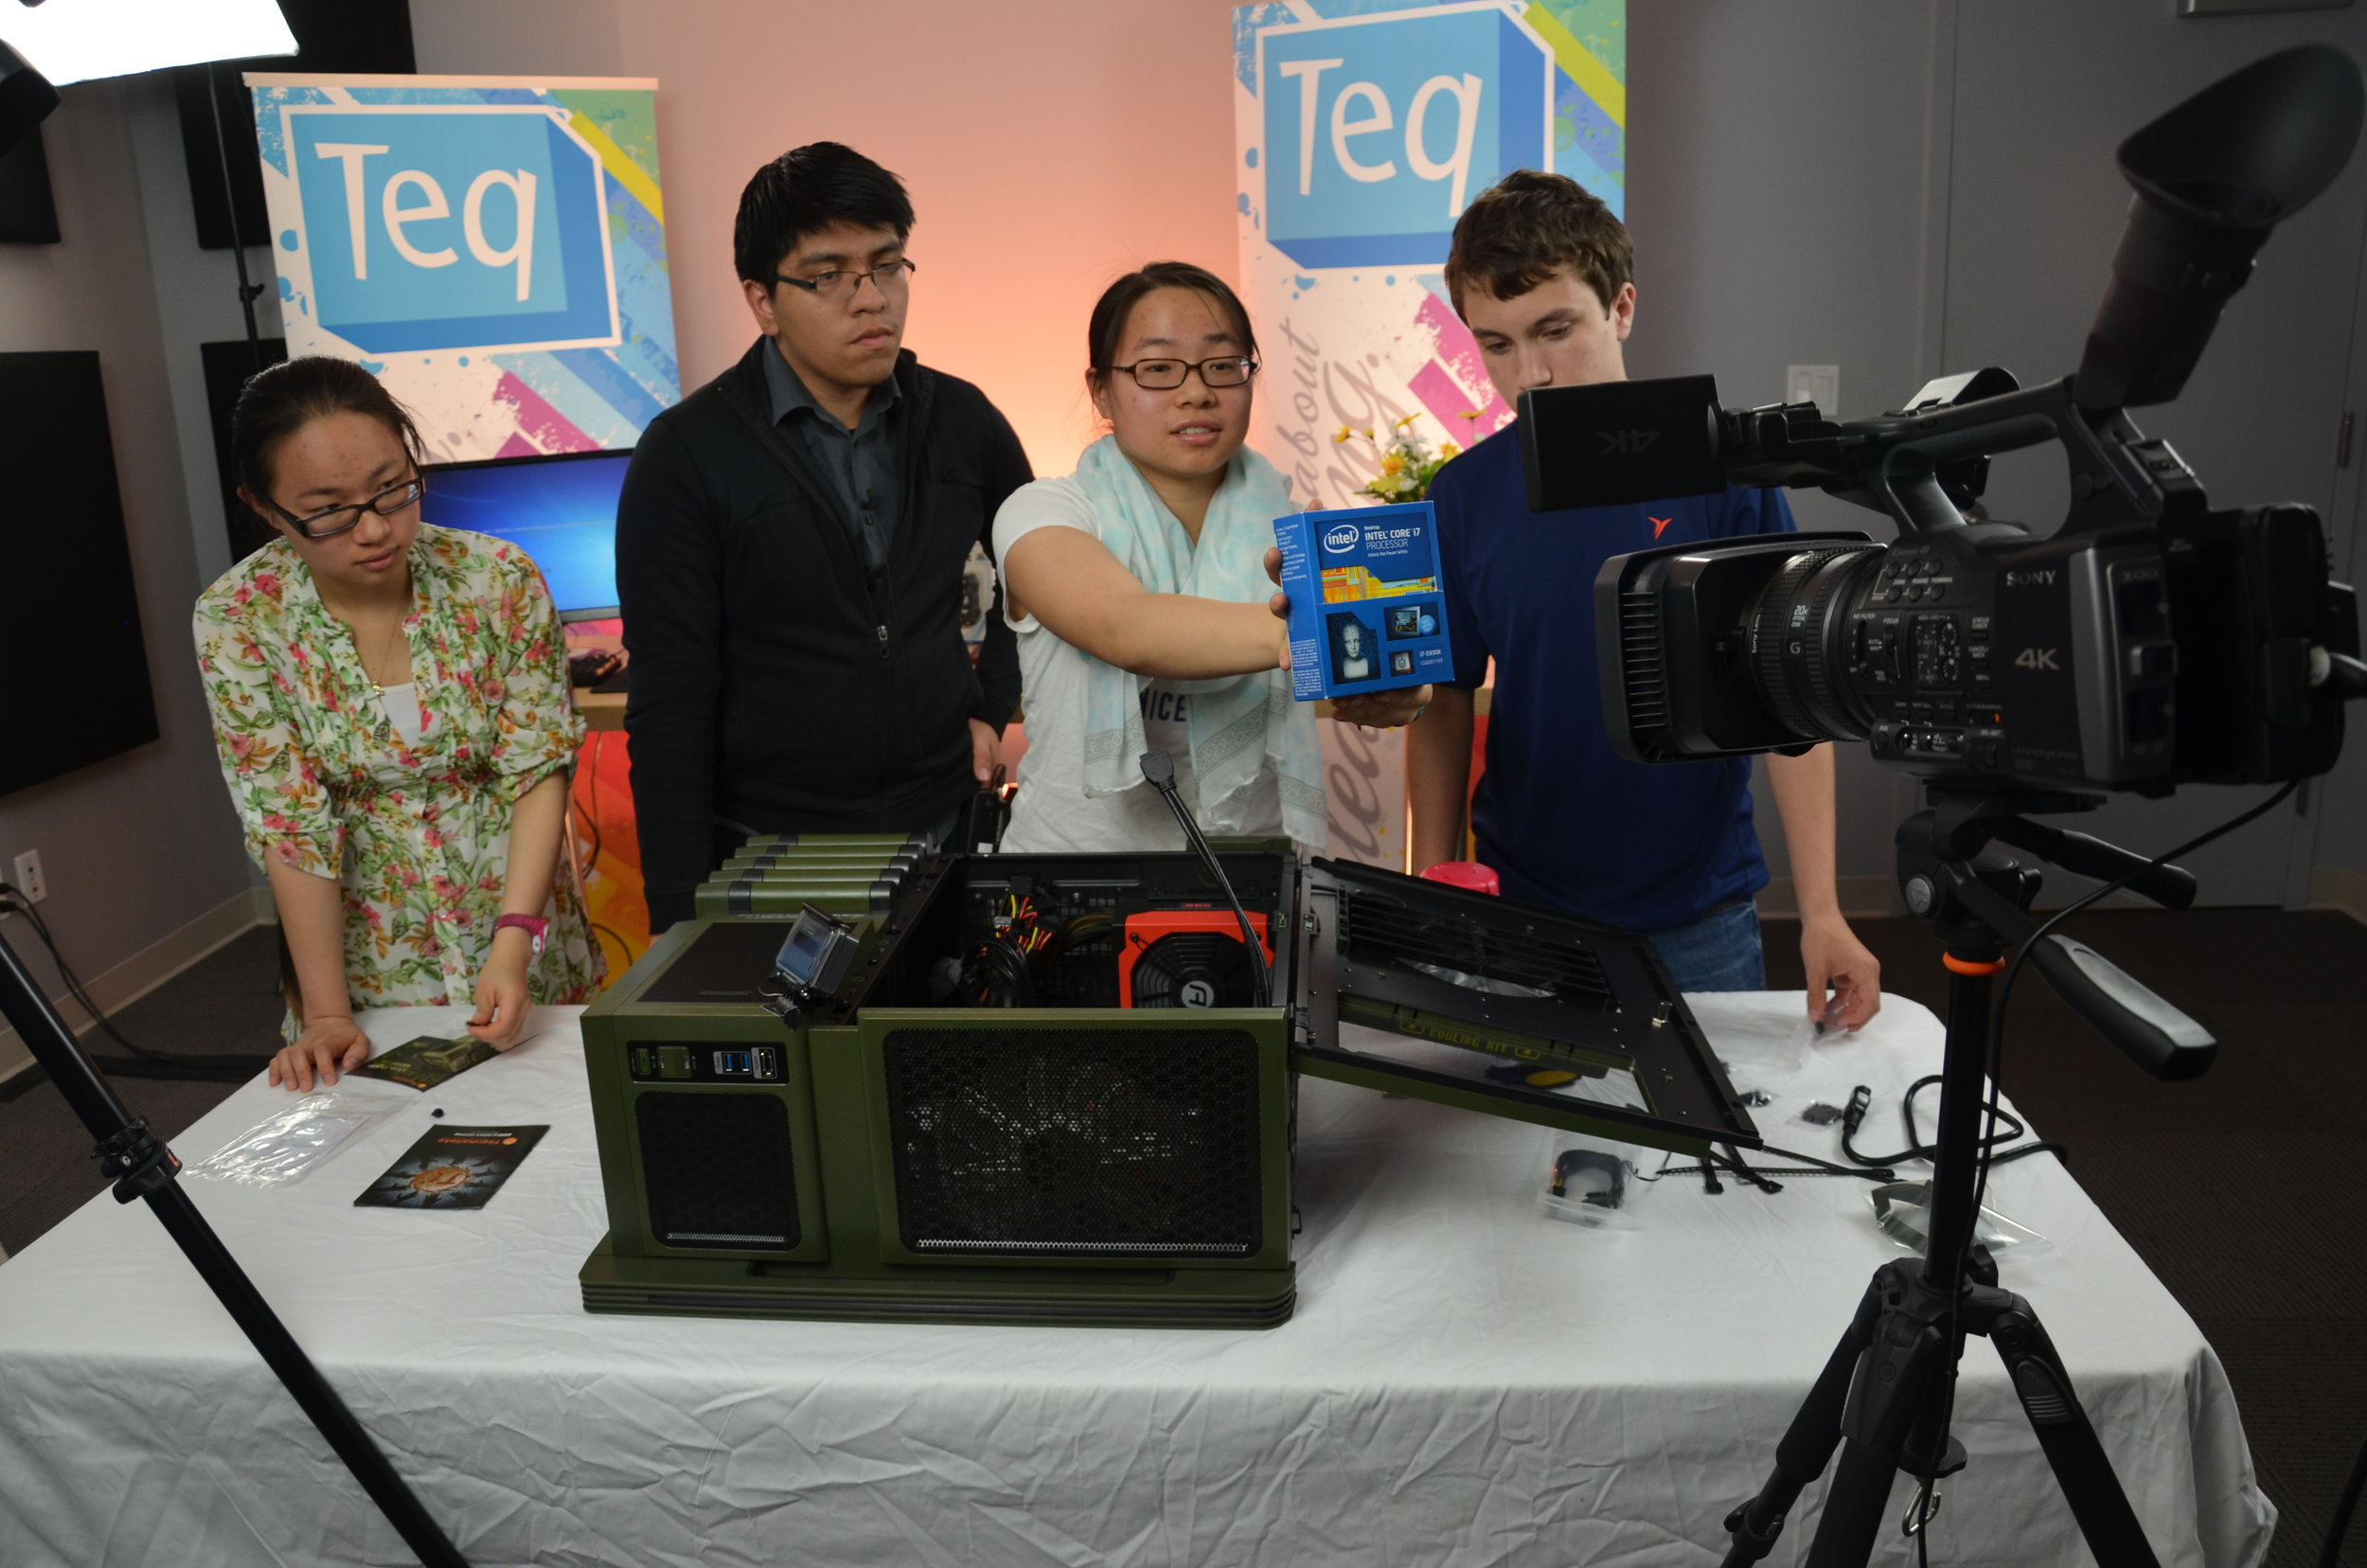 Luis teaching PC Building in 2015